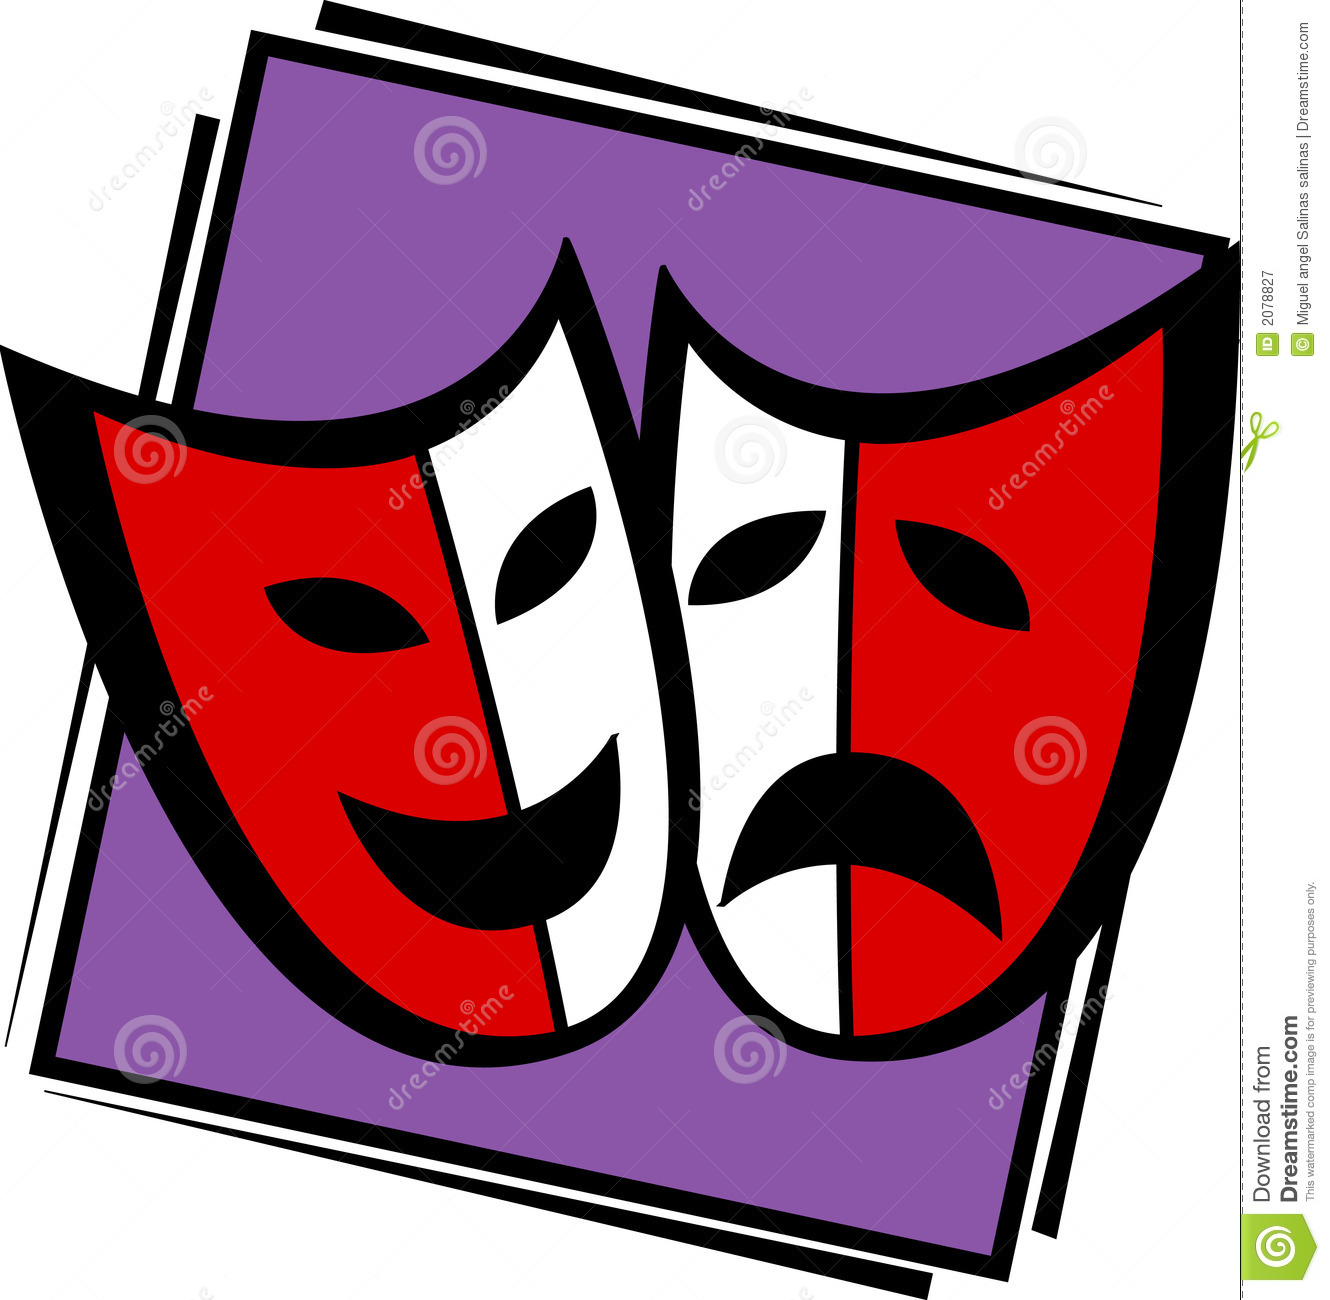 Illustration Of Two Theater Or Drama Masks Mr No Pr No 5 5637 28